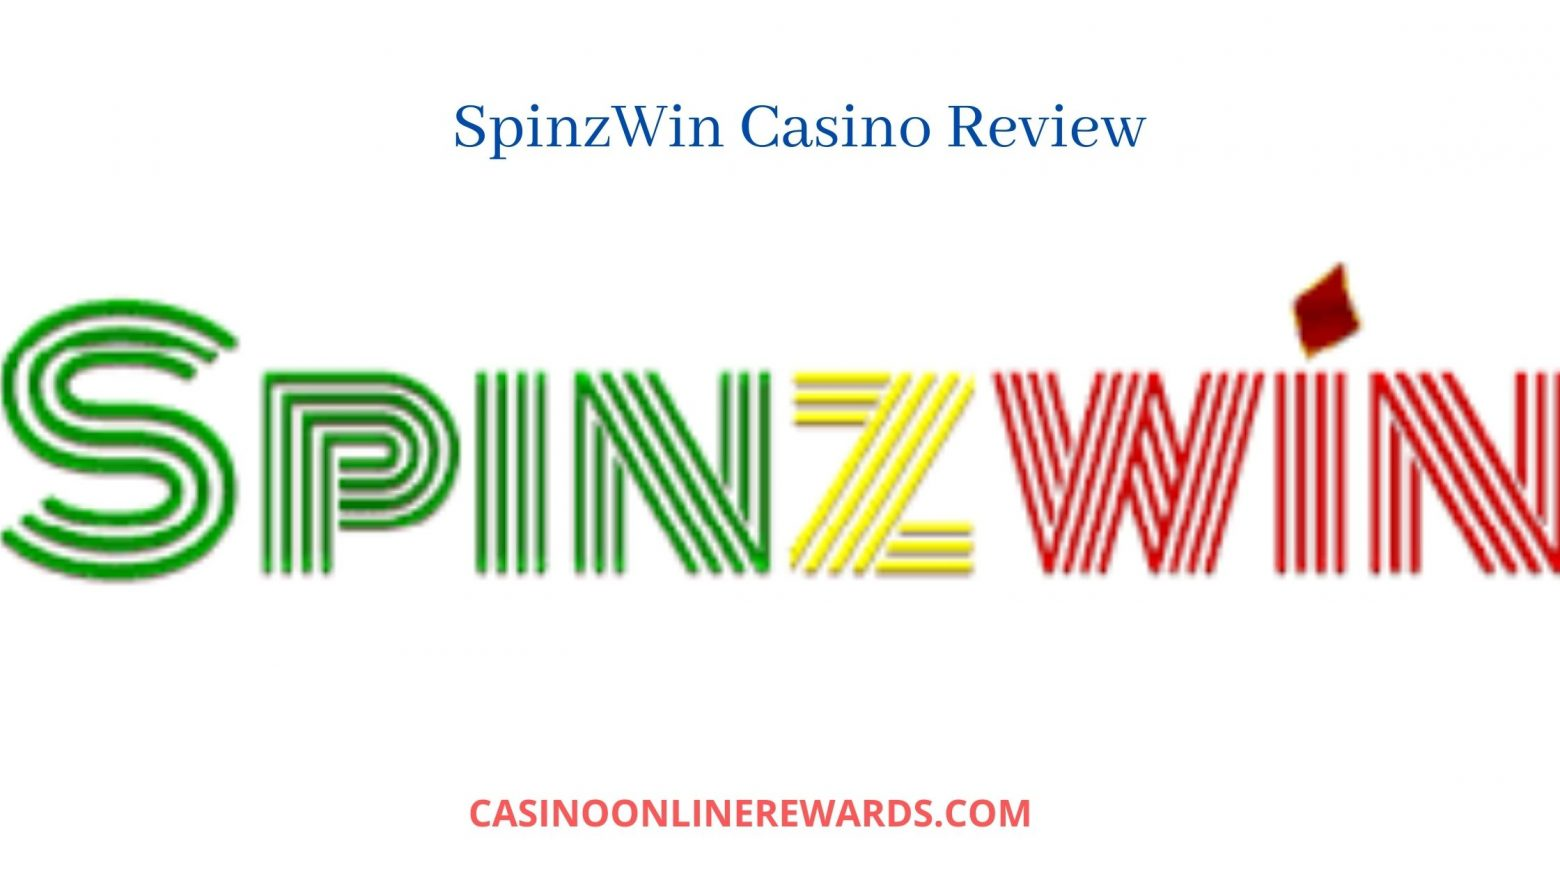 Experience the Best With Spinzwin Casino